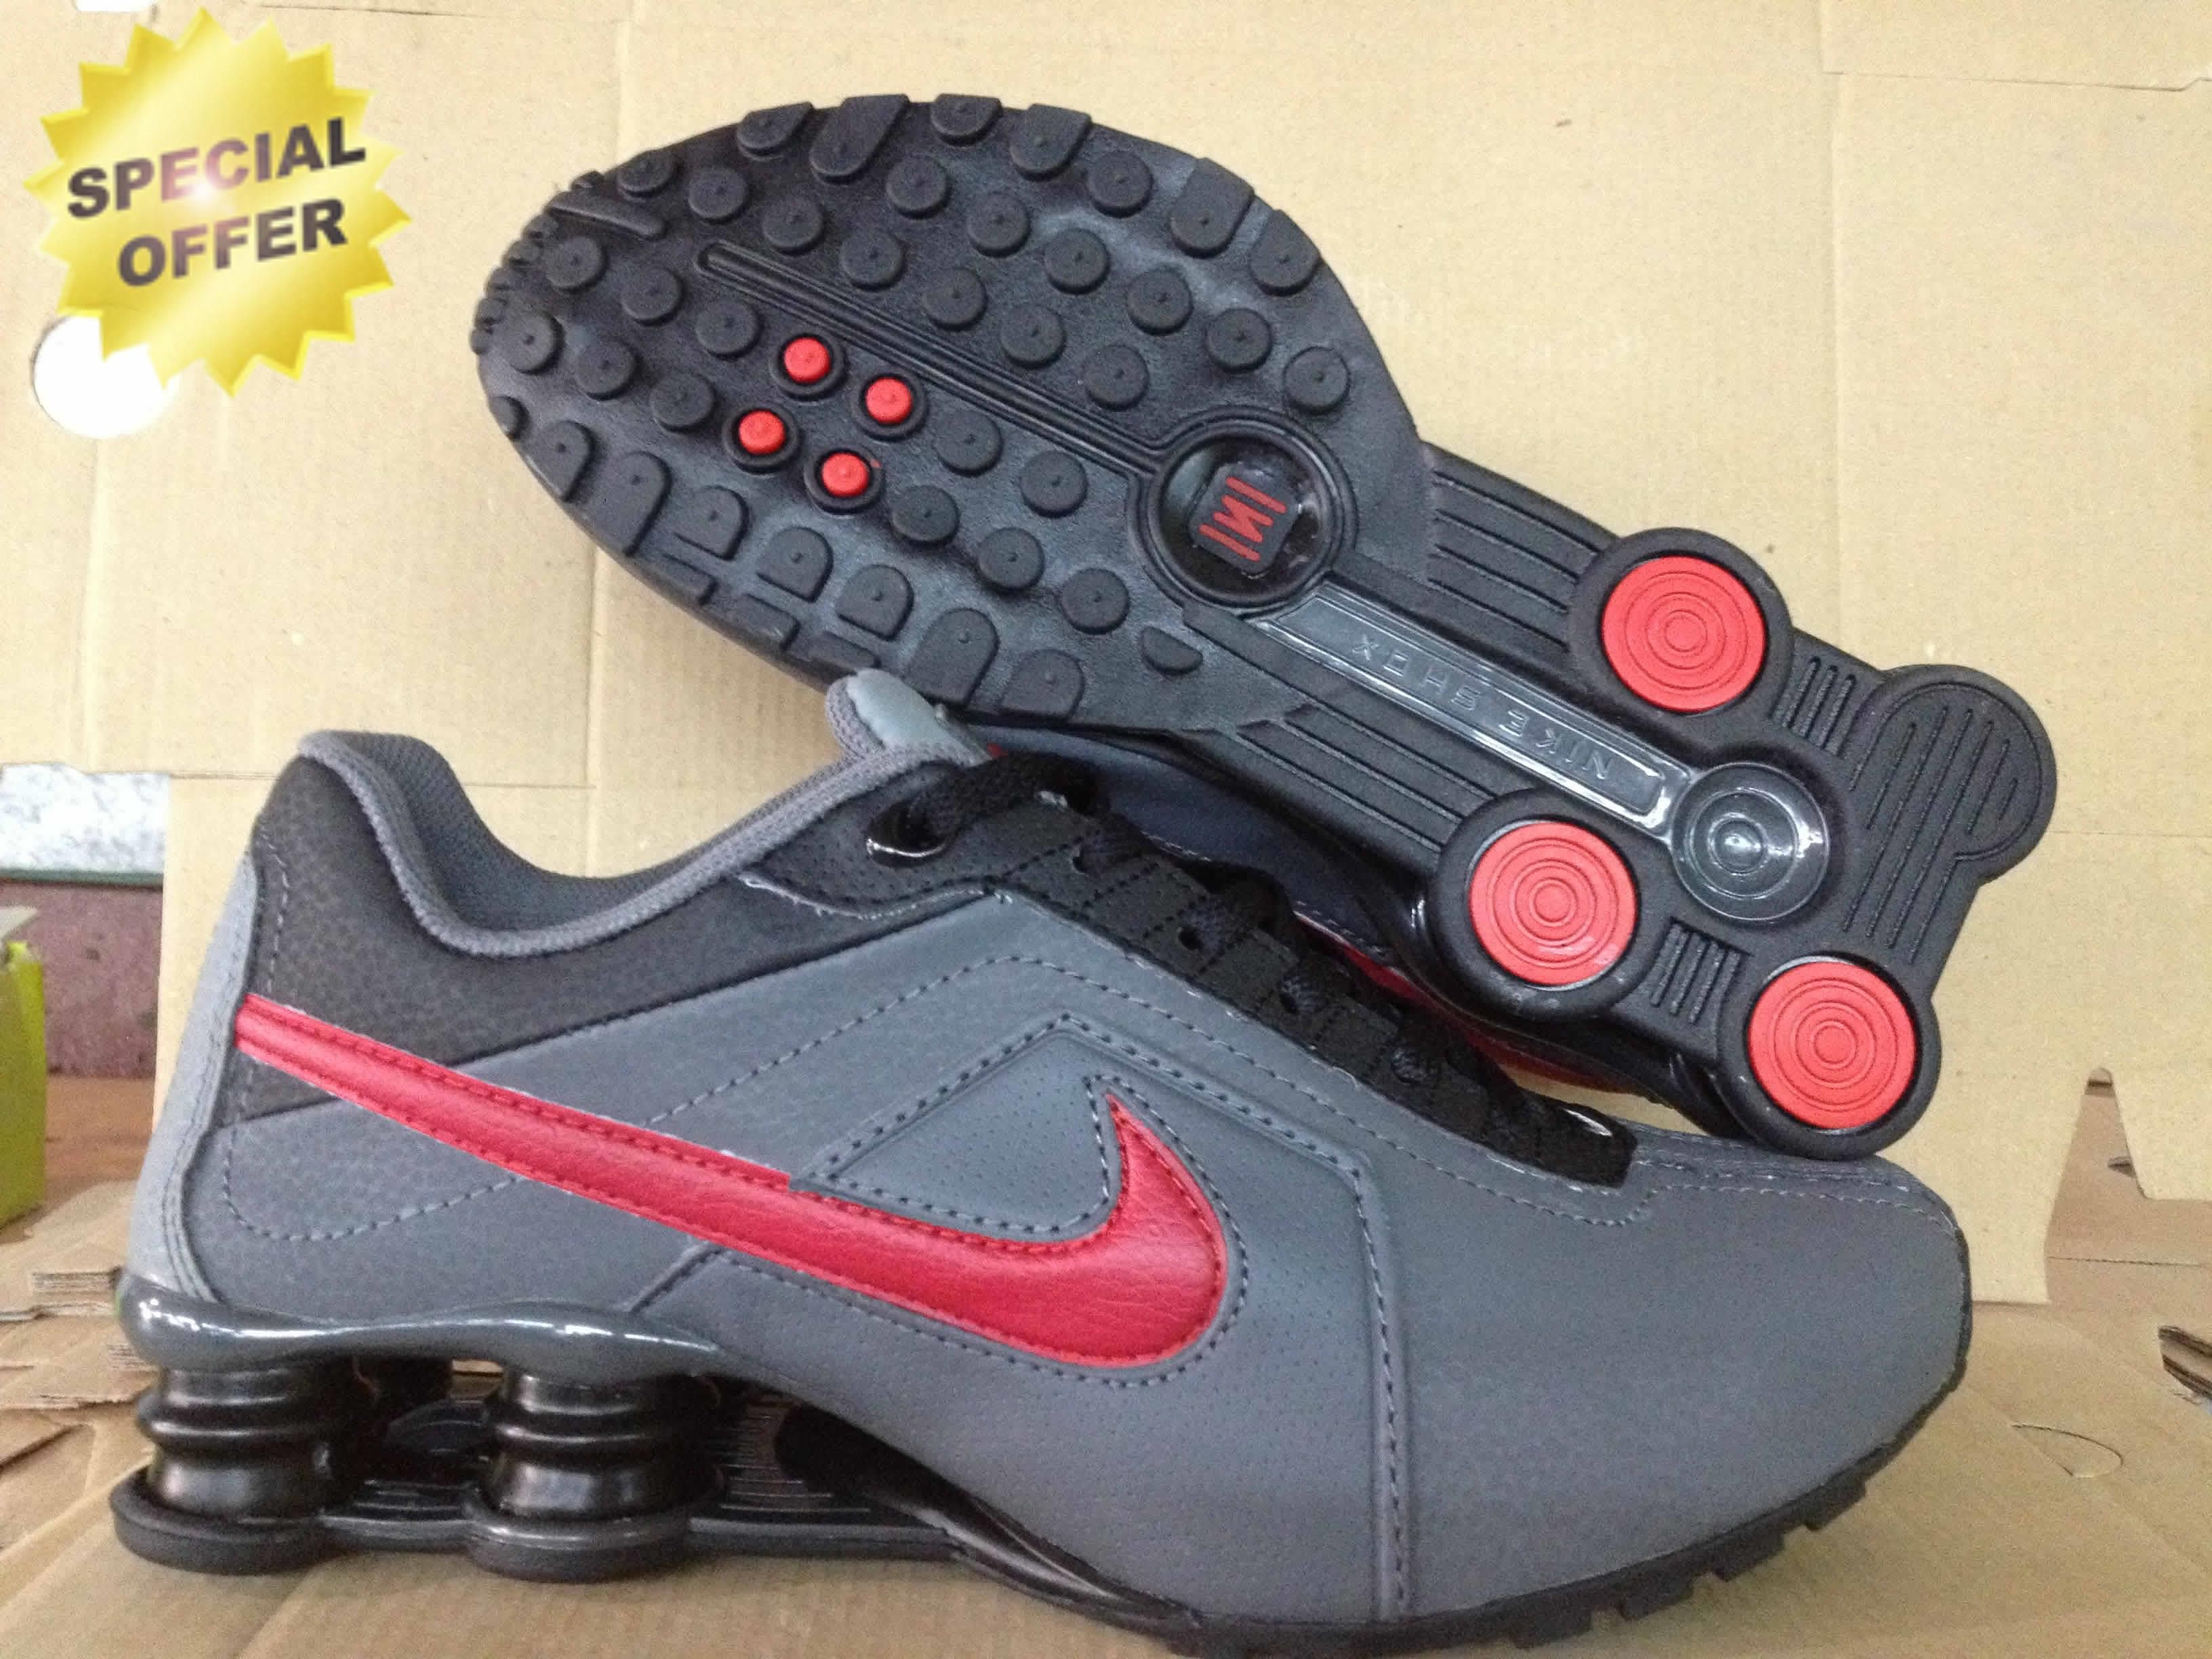 Nike Shox R4 Mens Shoe Sale